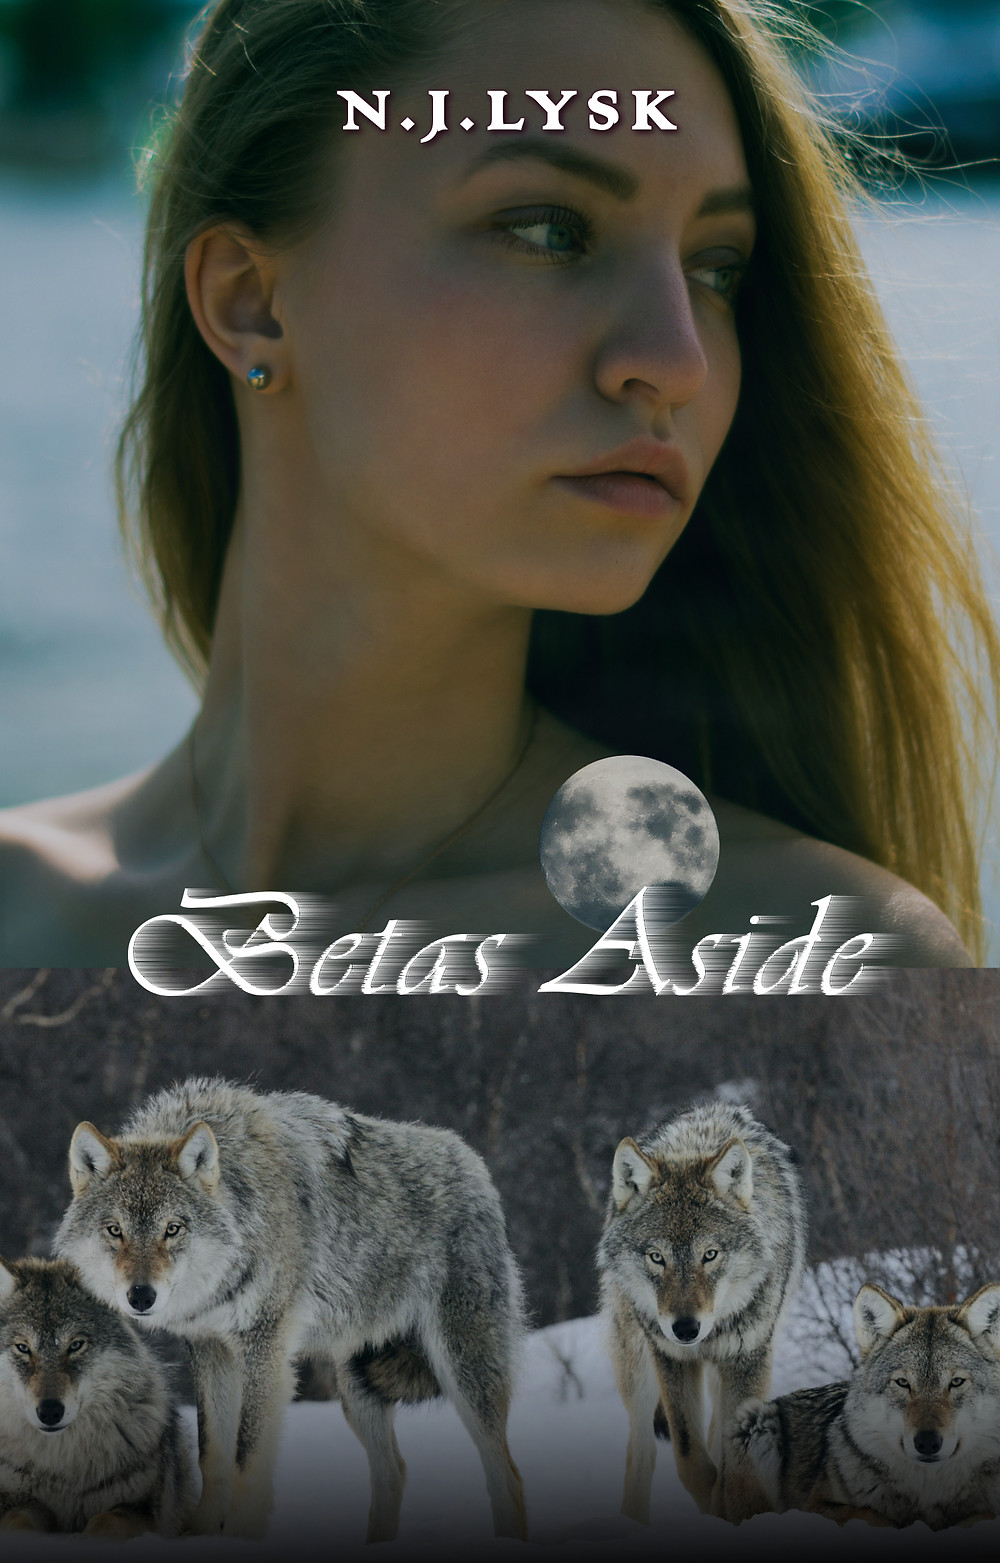 Young woman looking into the distance with wolves underneath, Betas Aside by N.J. Lysk